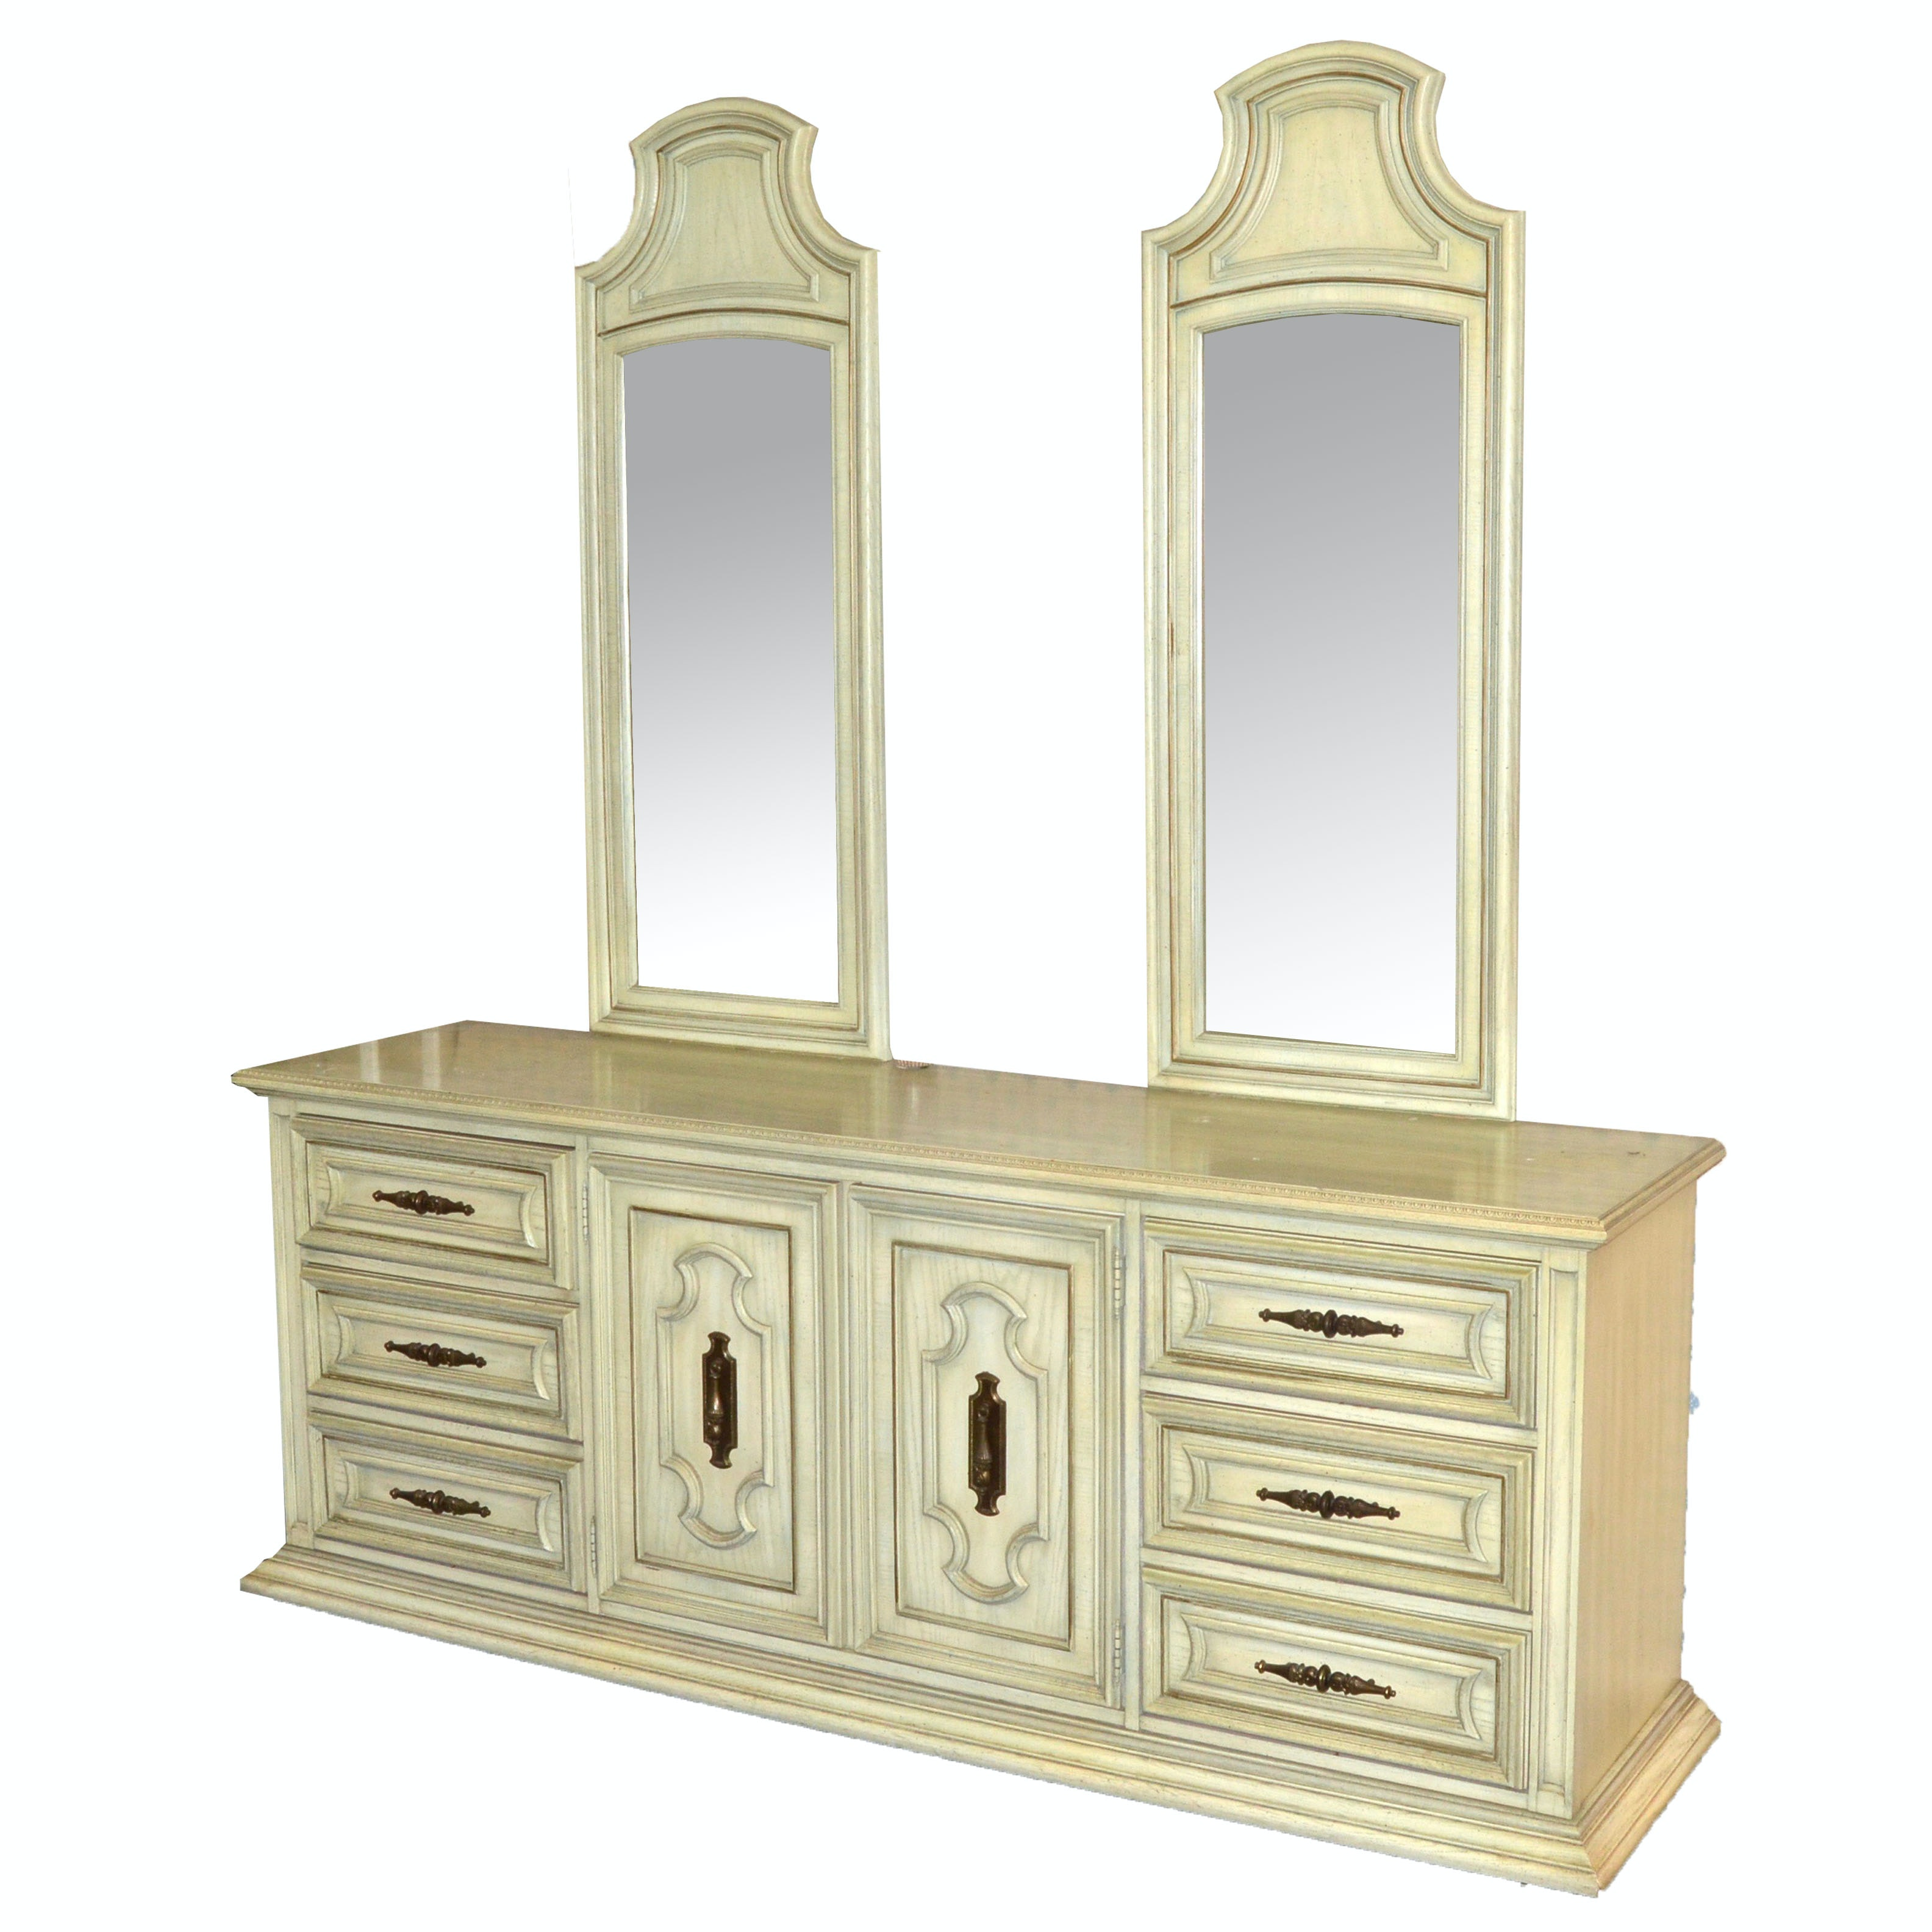 Louis XVI Style Dresser and Mirror Set by Stanley Furniture